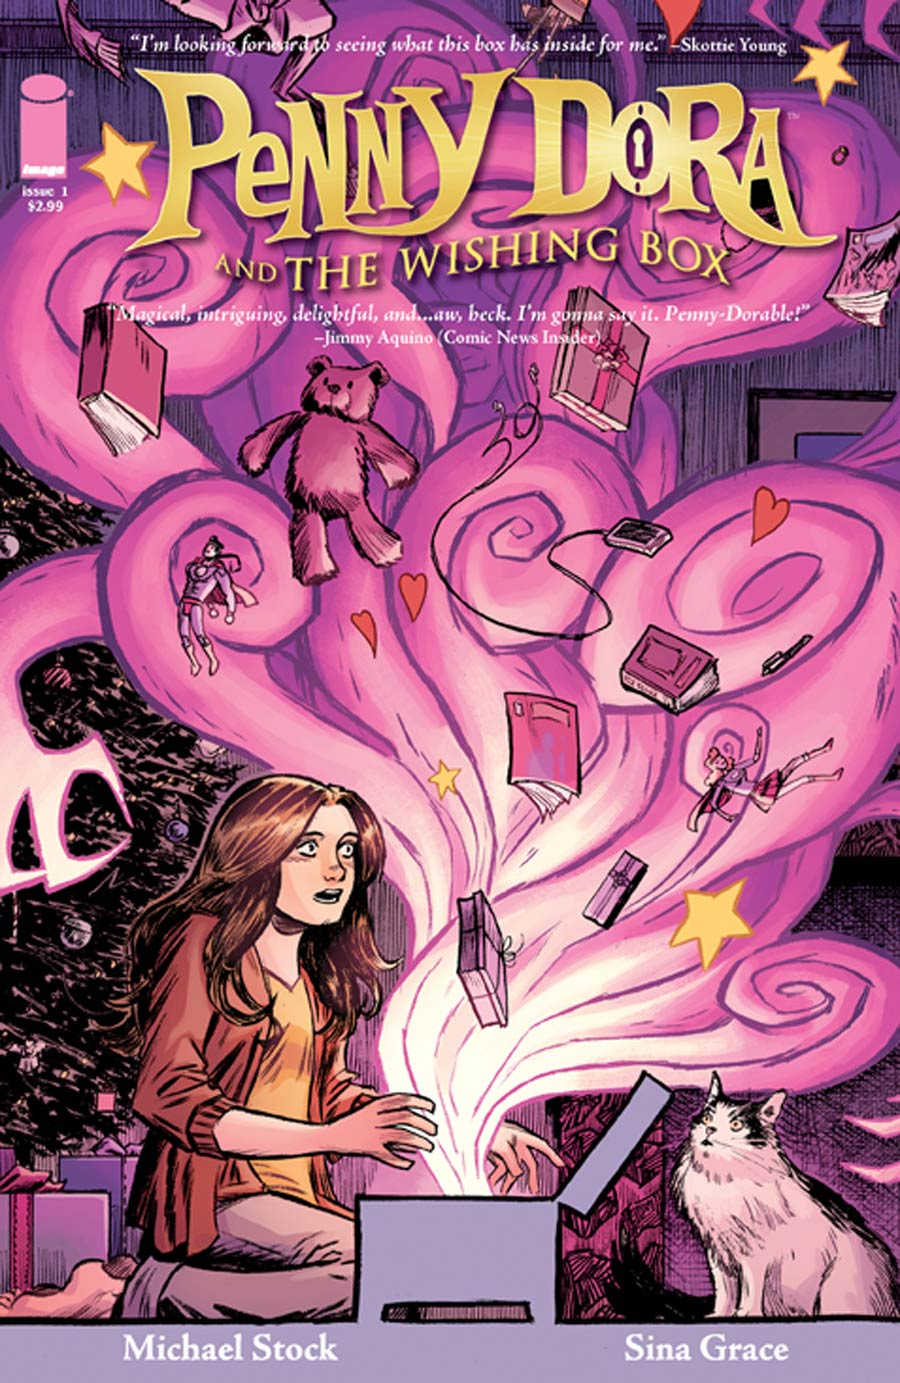 Penny Dora And The Wishing Box #1 Cover A Sina Grace